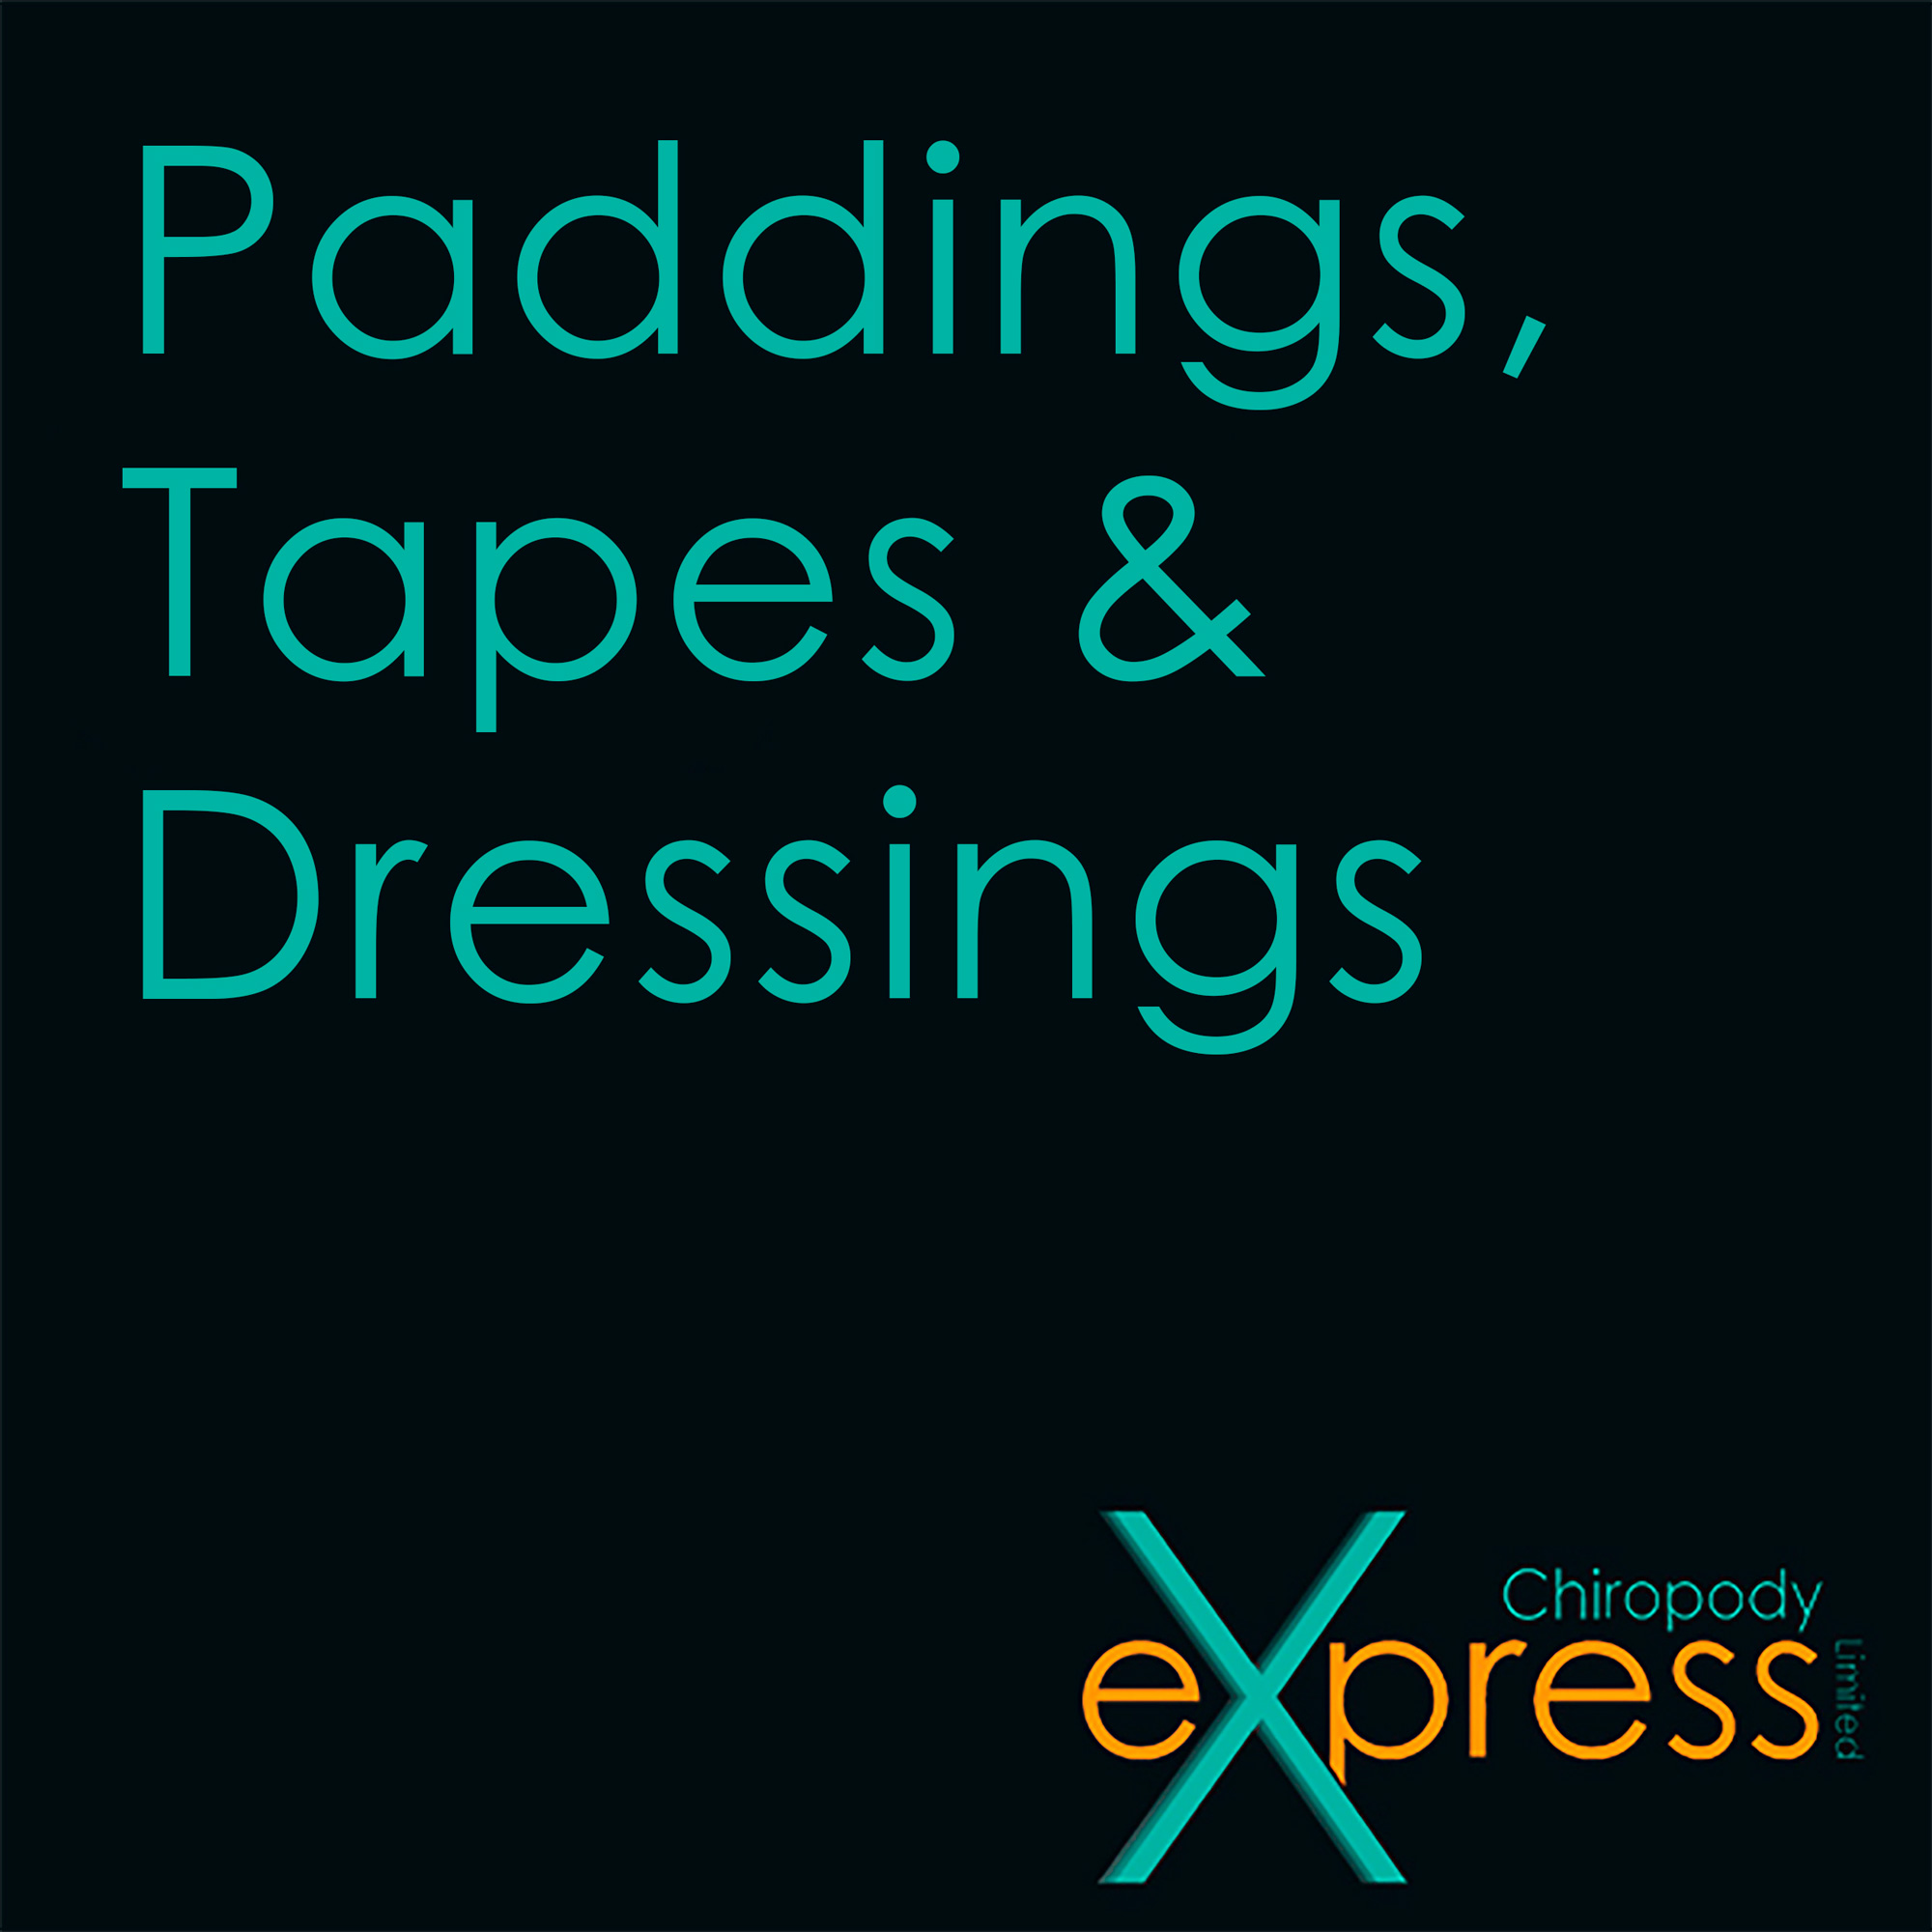 Paddings, Tapes, Dressings